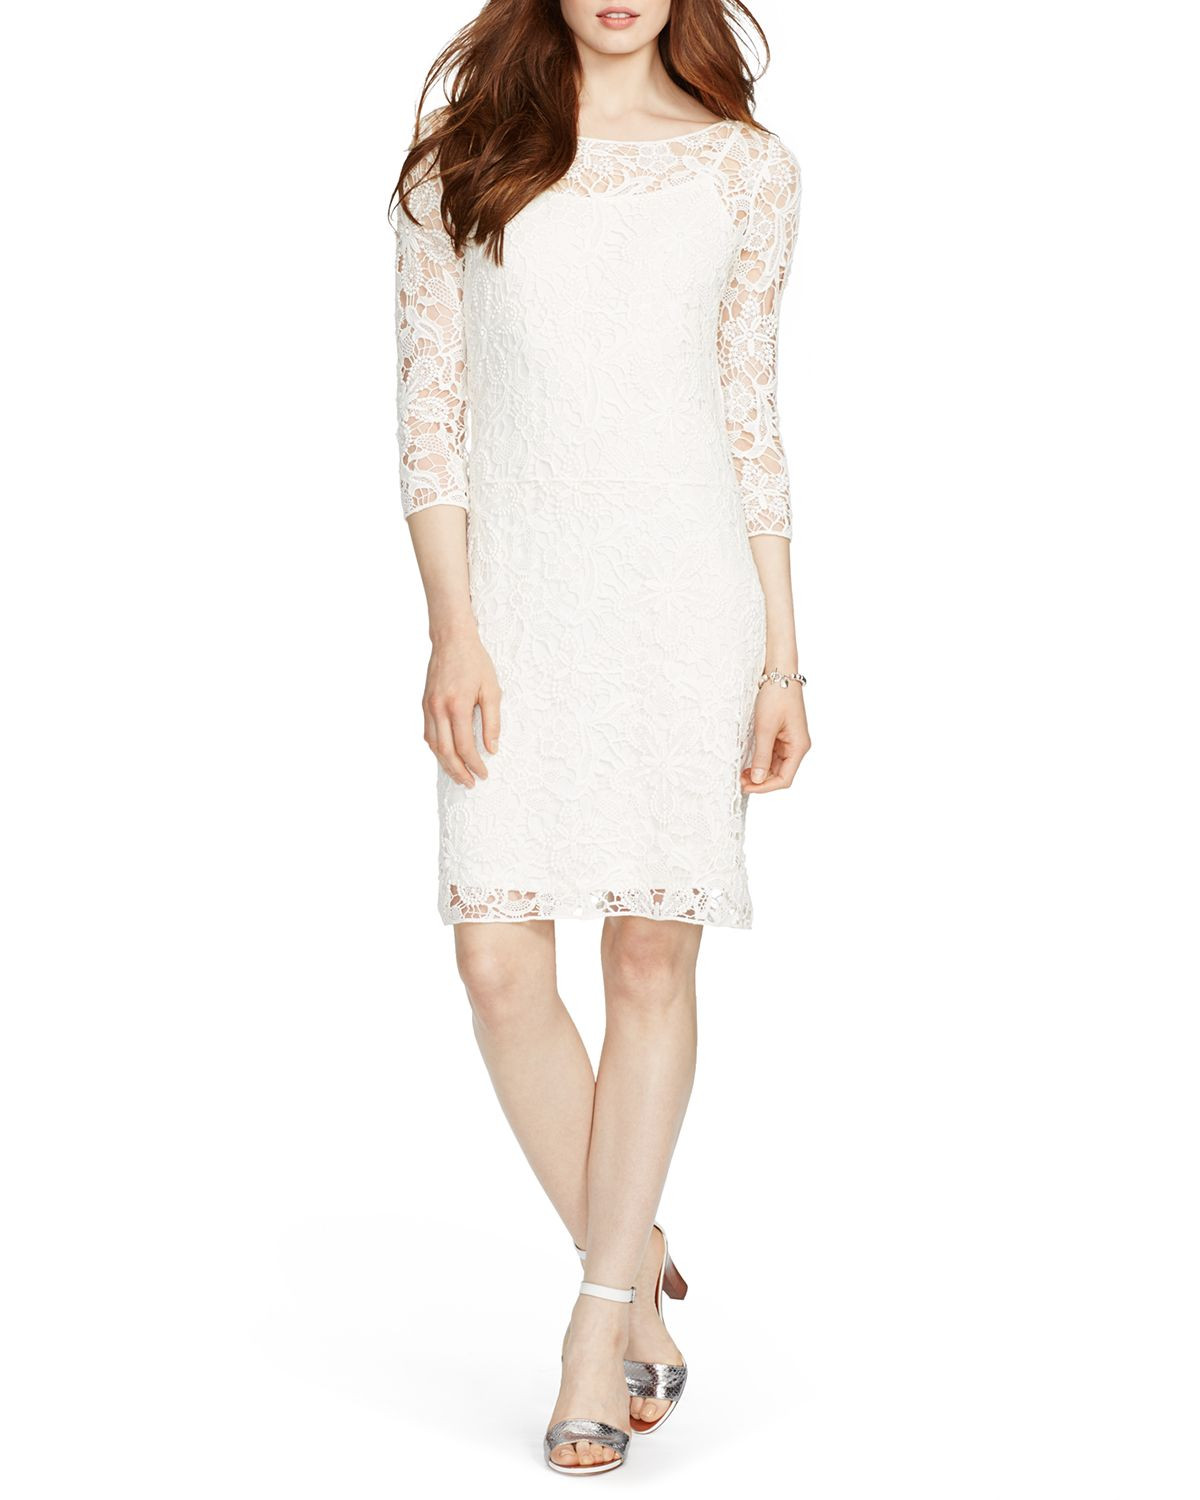 Lyst Ralph Lauren Lauren Dress Crochet Lace in White